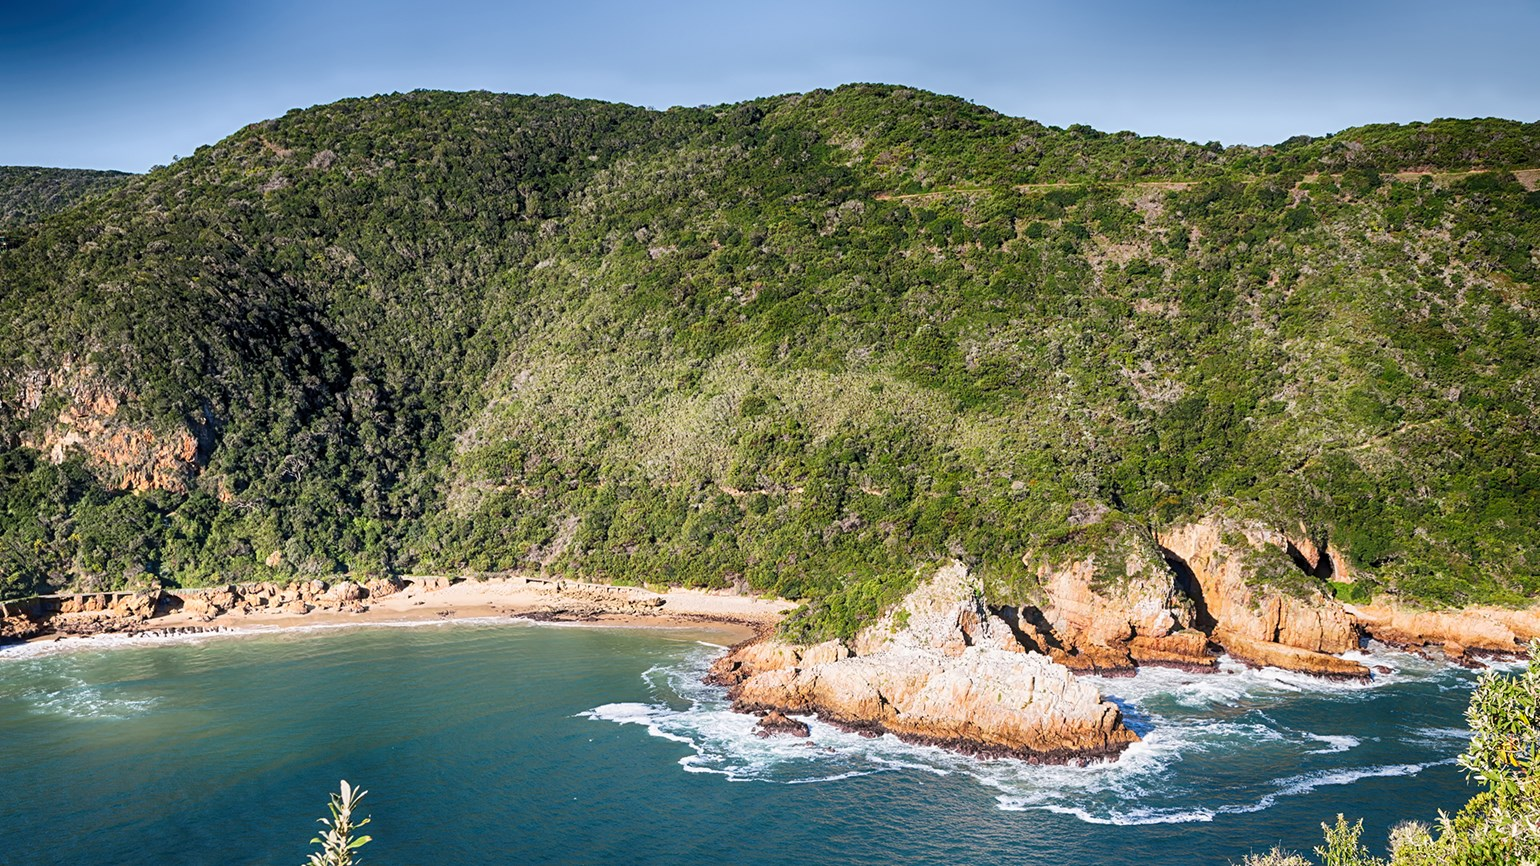 South Africa's Garden Route earns biosphere reserve designation